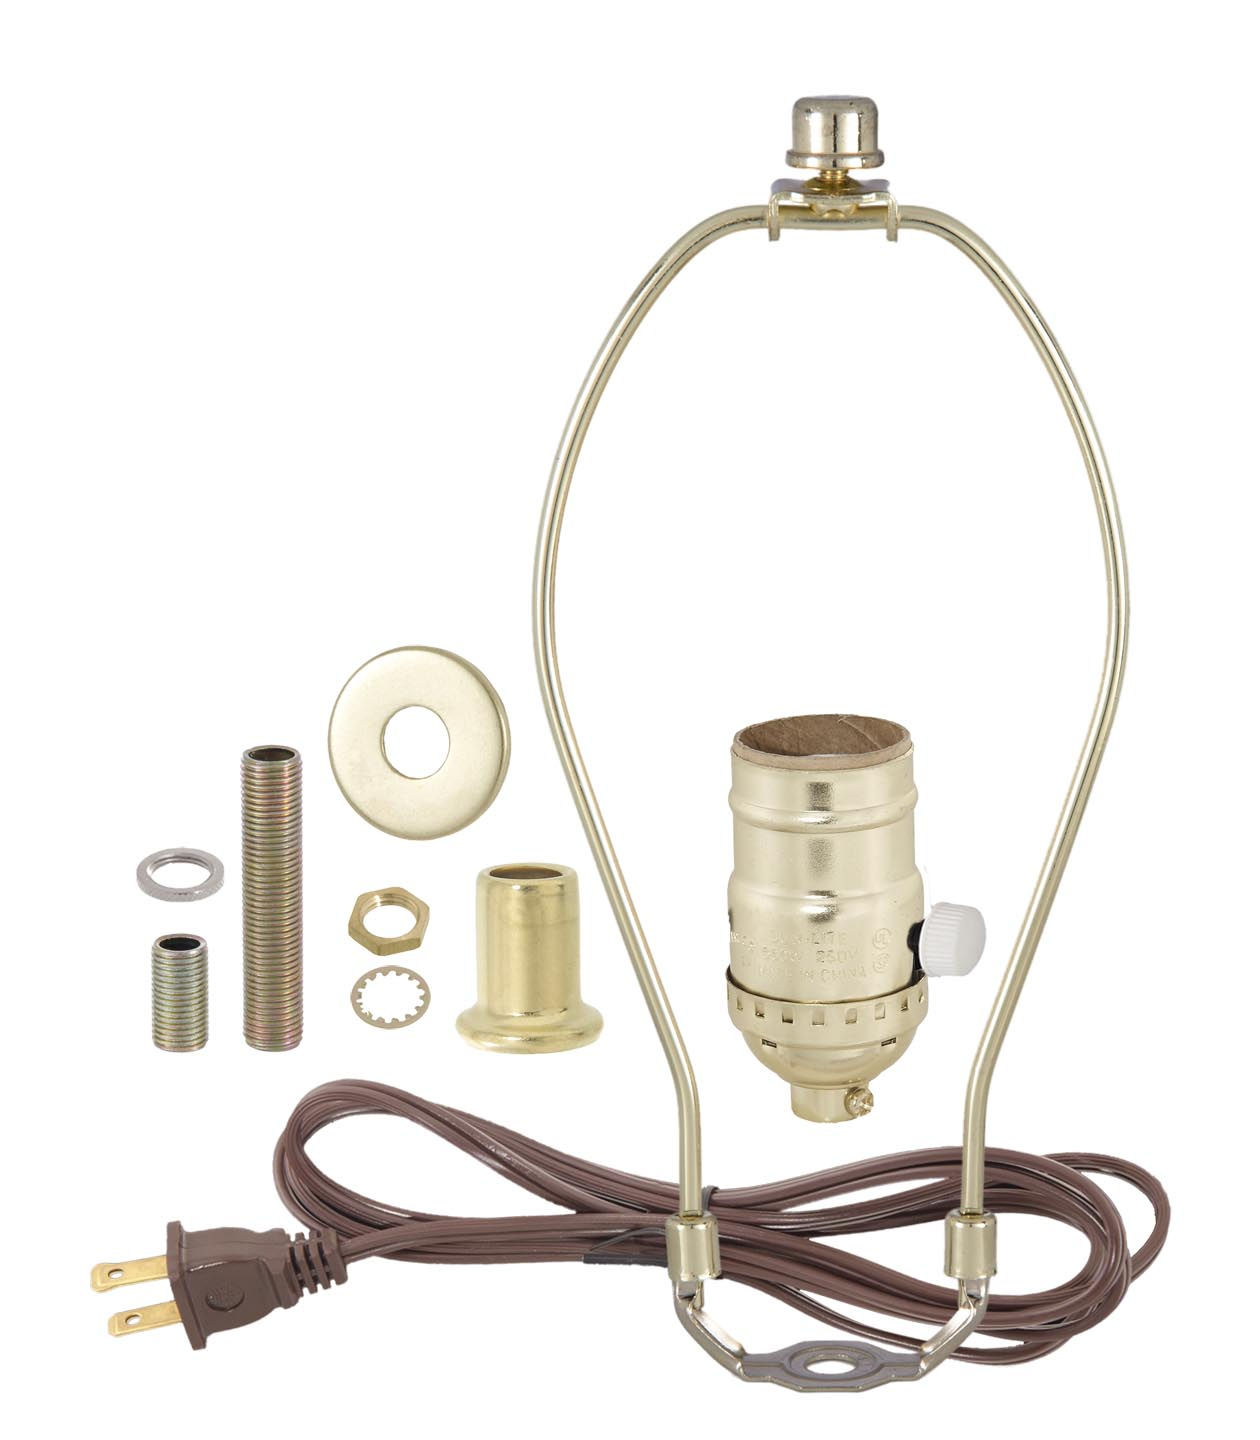 Brass Table Lamp Wiring Kit With Full Range Dimmer Socket 30554p10